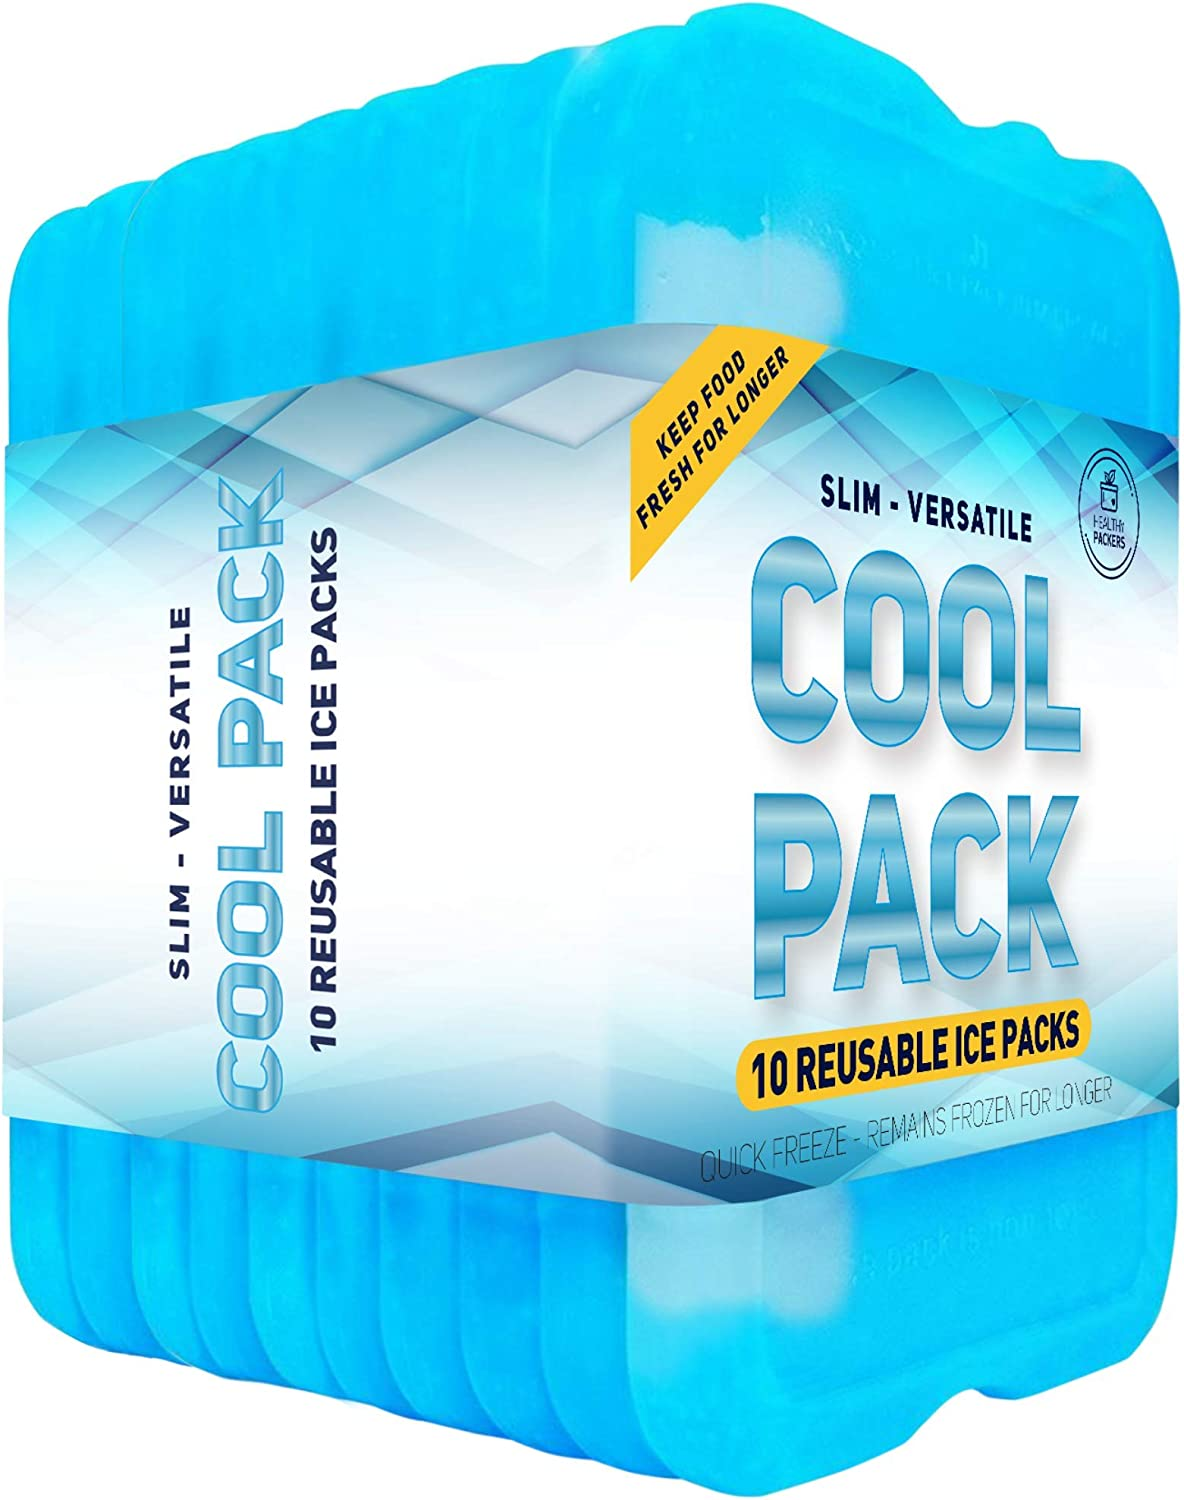 Healthy Packers Ice Pack for Lunch Box - Freezer Packs - Original Cool Pack (Set of 10) | Slim & Long-Lasting Ice Packs for Your Lunch or Cooler Bag